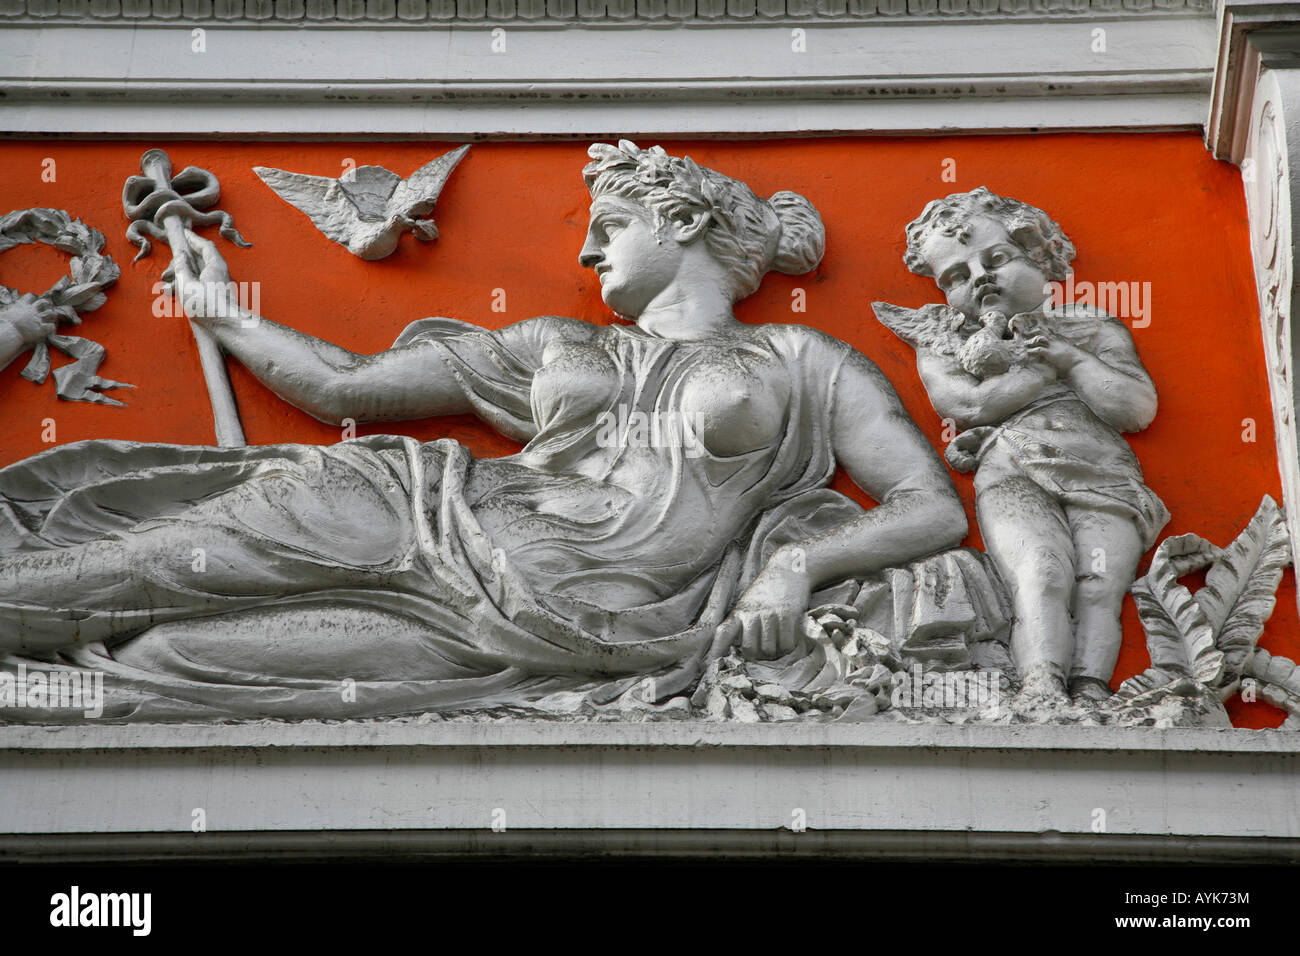 Classical frieze decorating the Royal Arcade on Old Bond Street, Mayfair, London Stock Photo